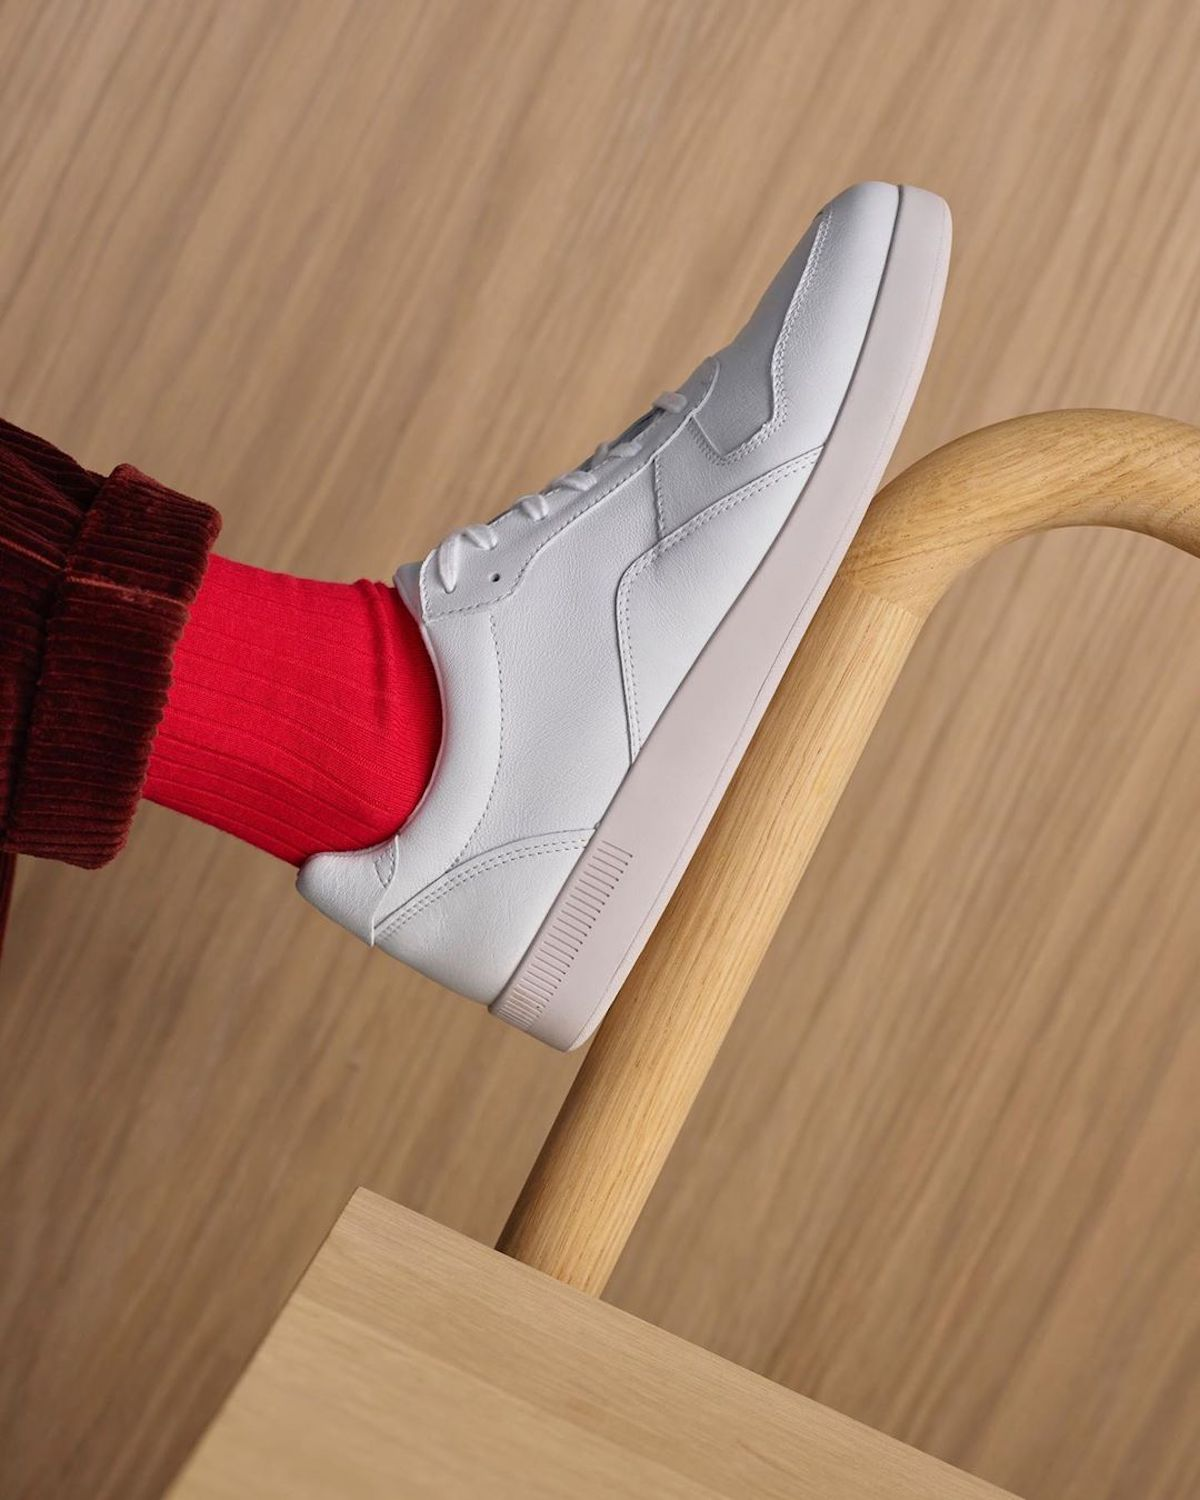 Everlane's New Under-$100 Sneakers Are Out-of-This-World Comfy